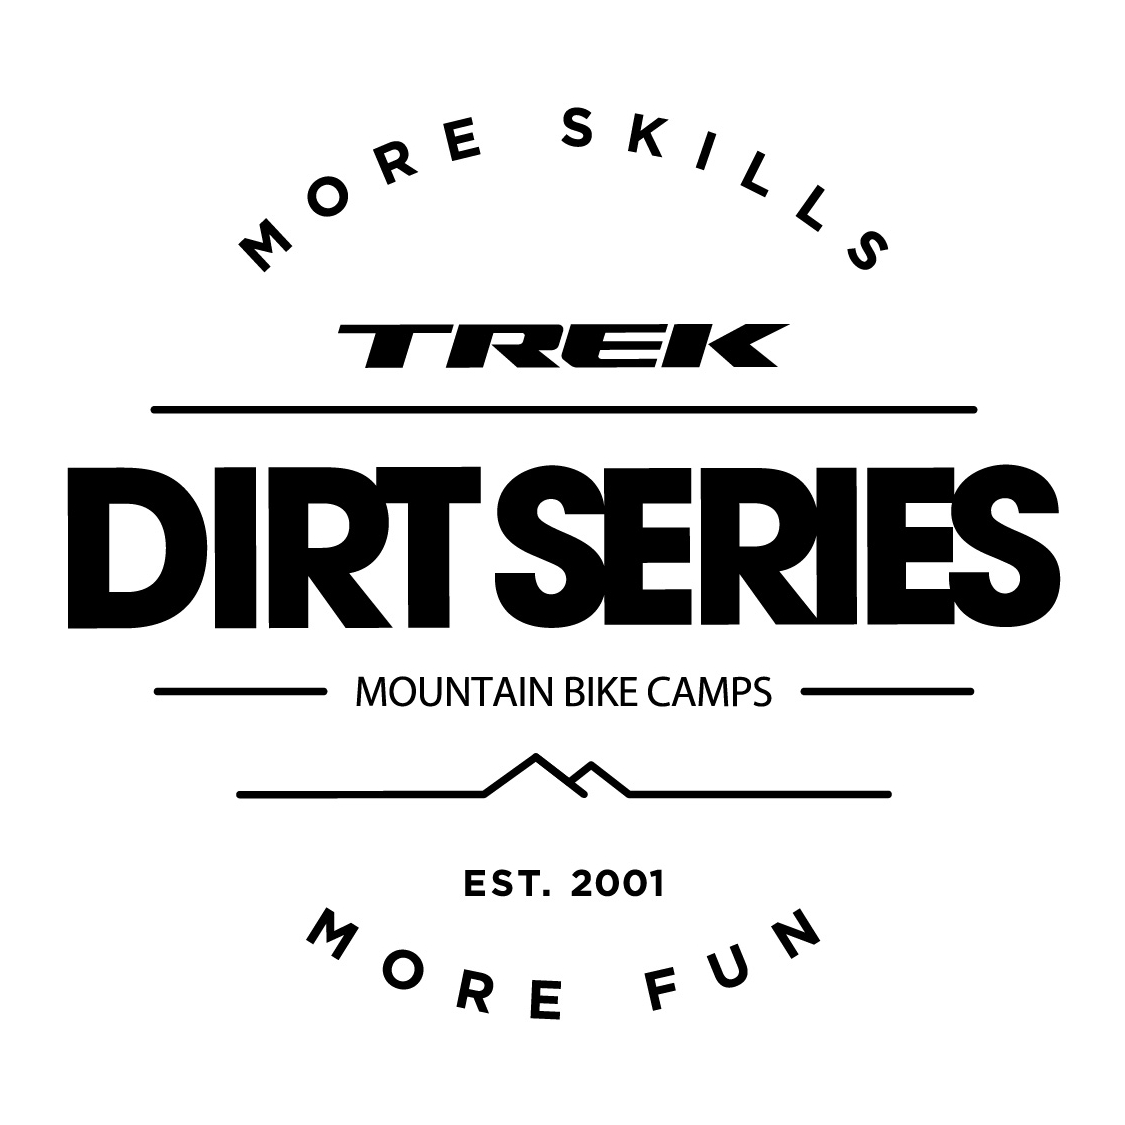 Dirt Series Mountain Bike Camp - Whistler, BC